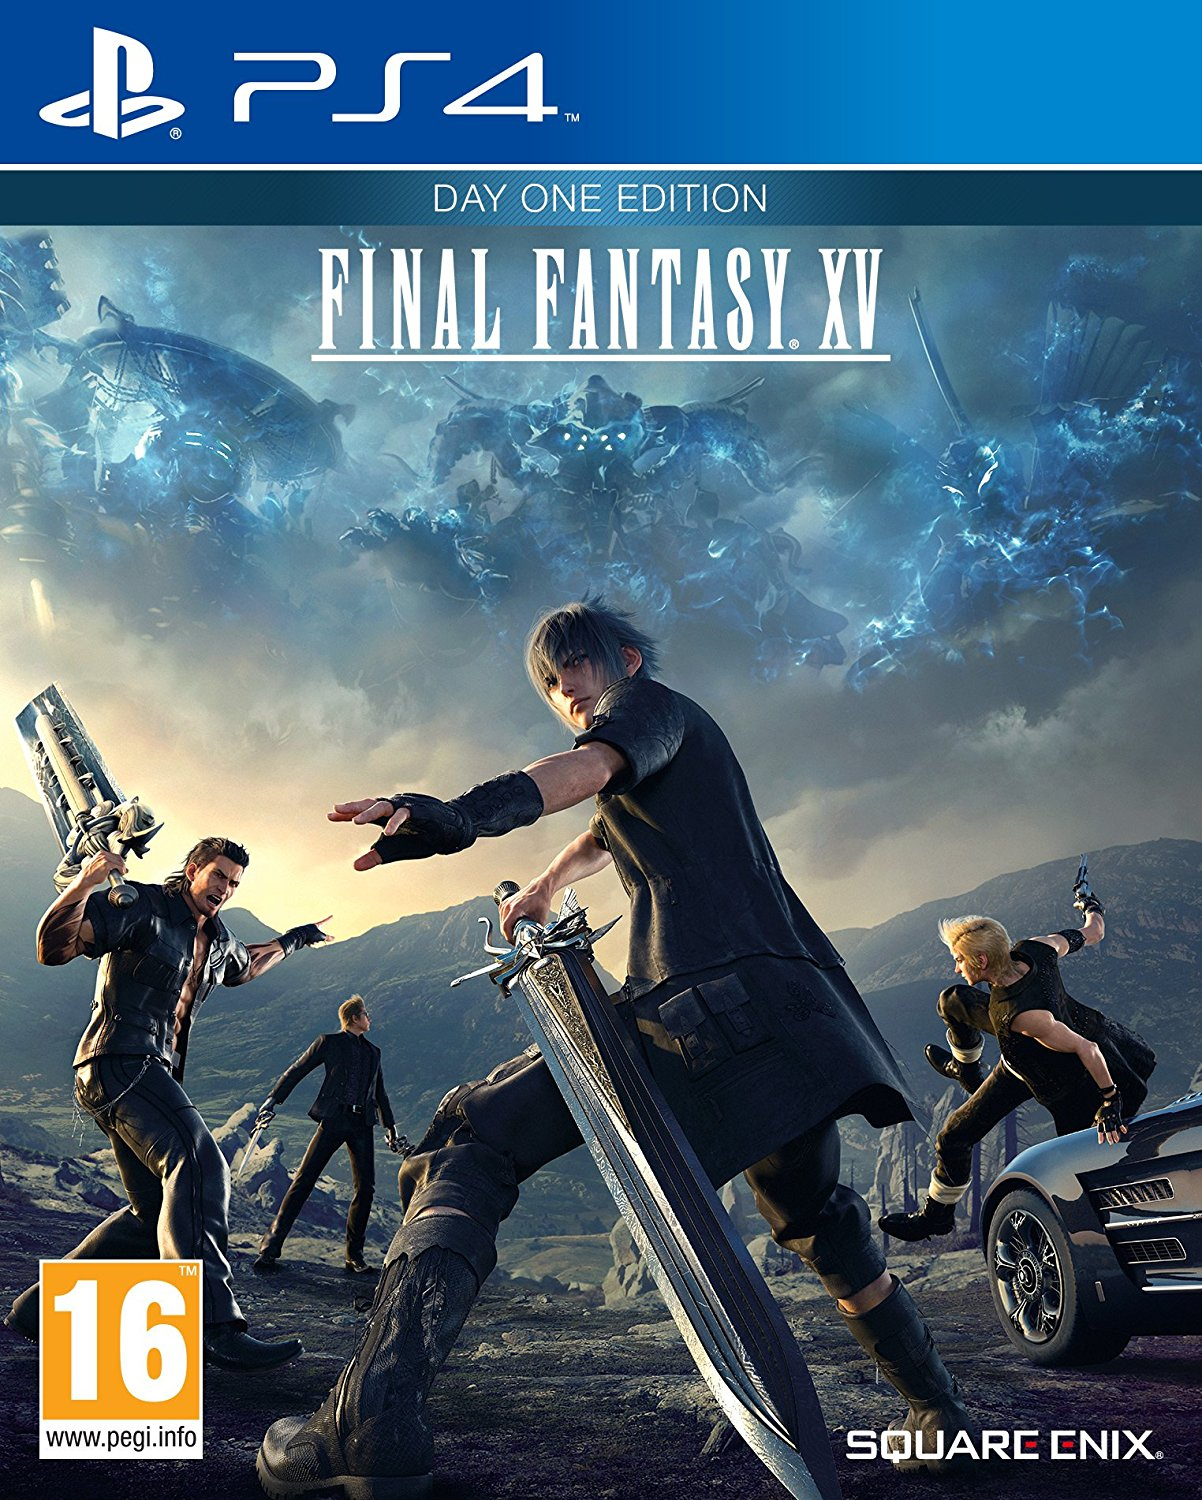 Final Fantasy XV (15) - Day One Edition /PS4